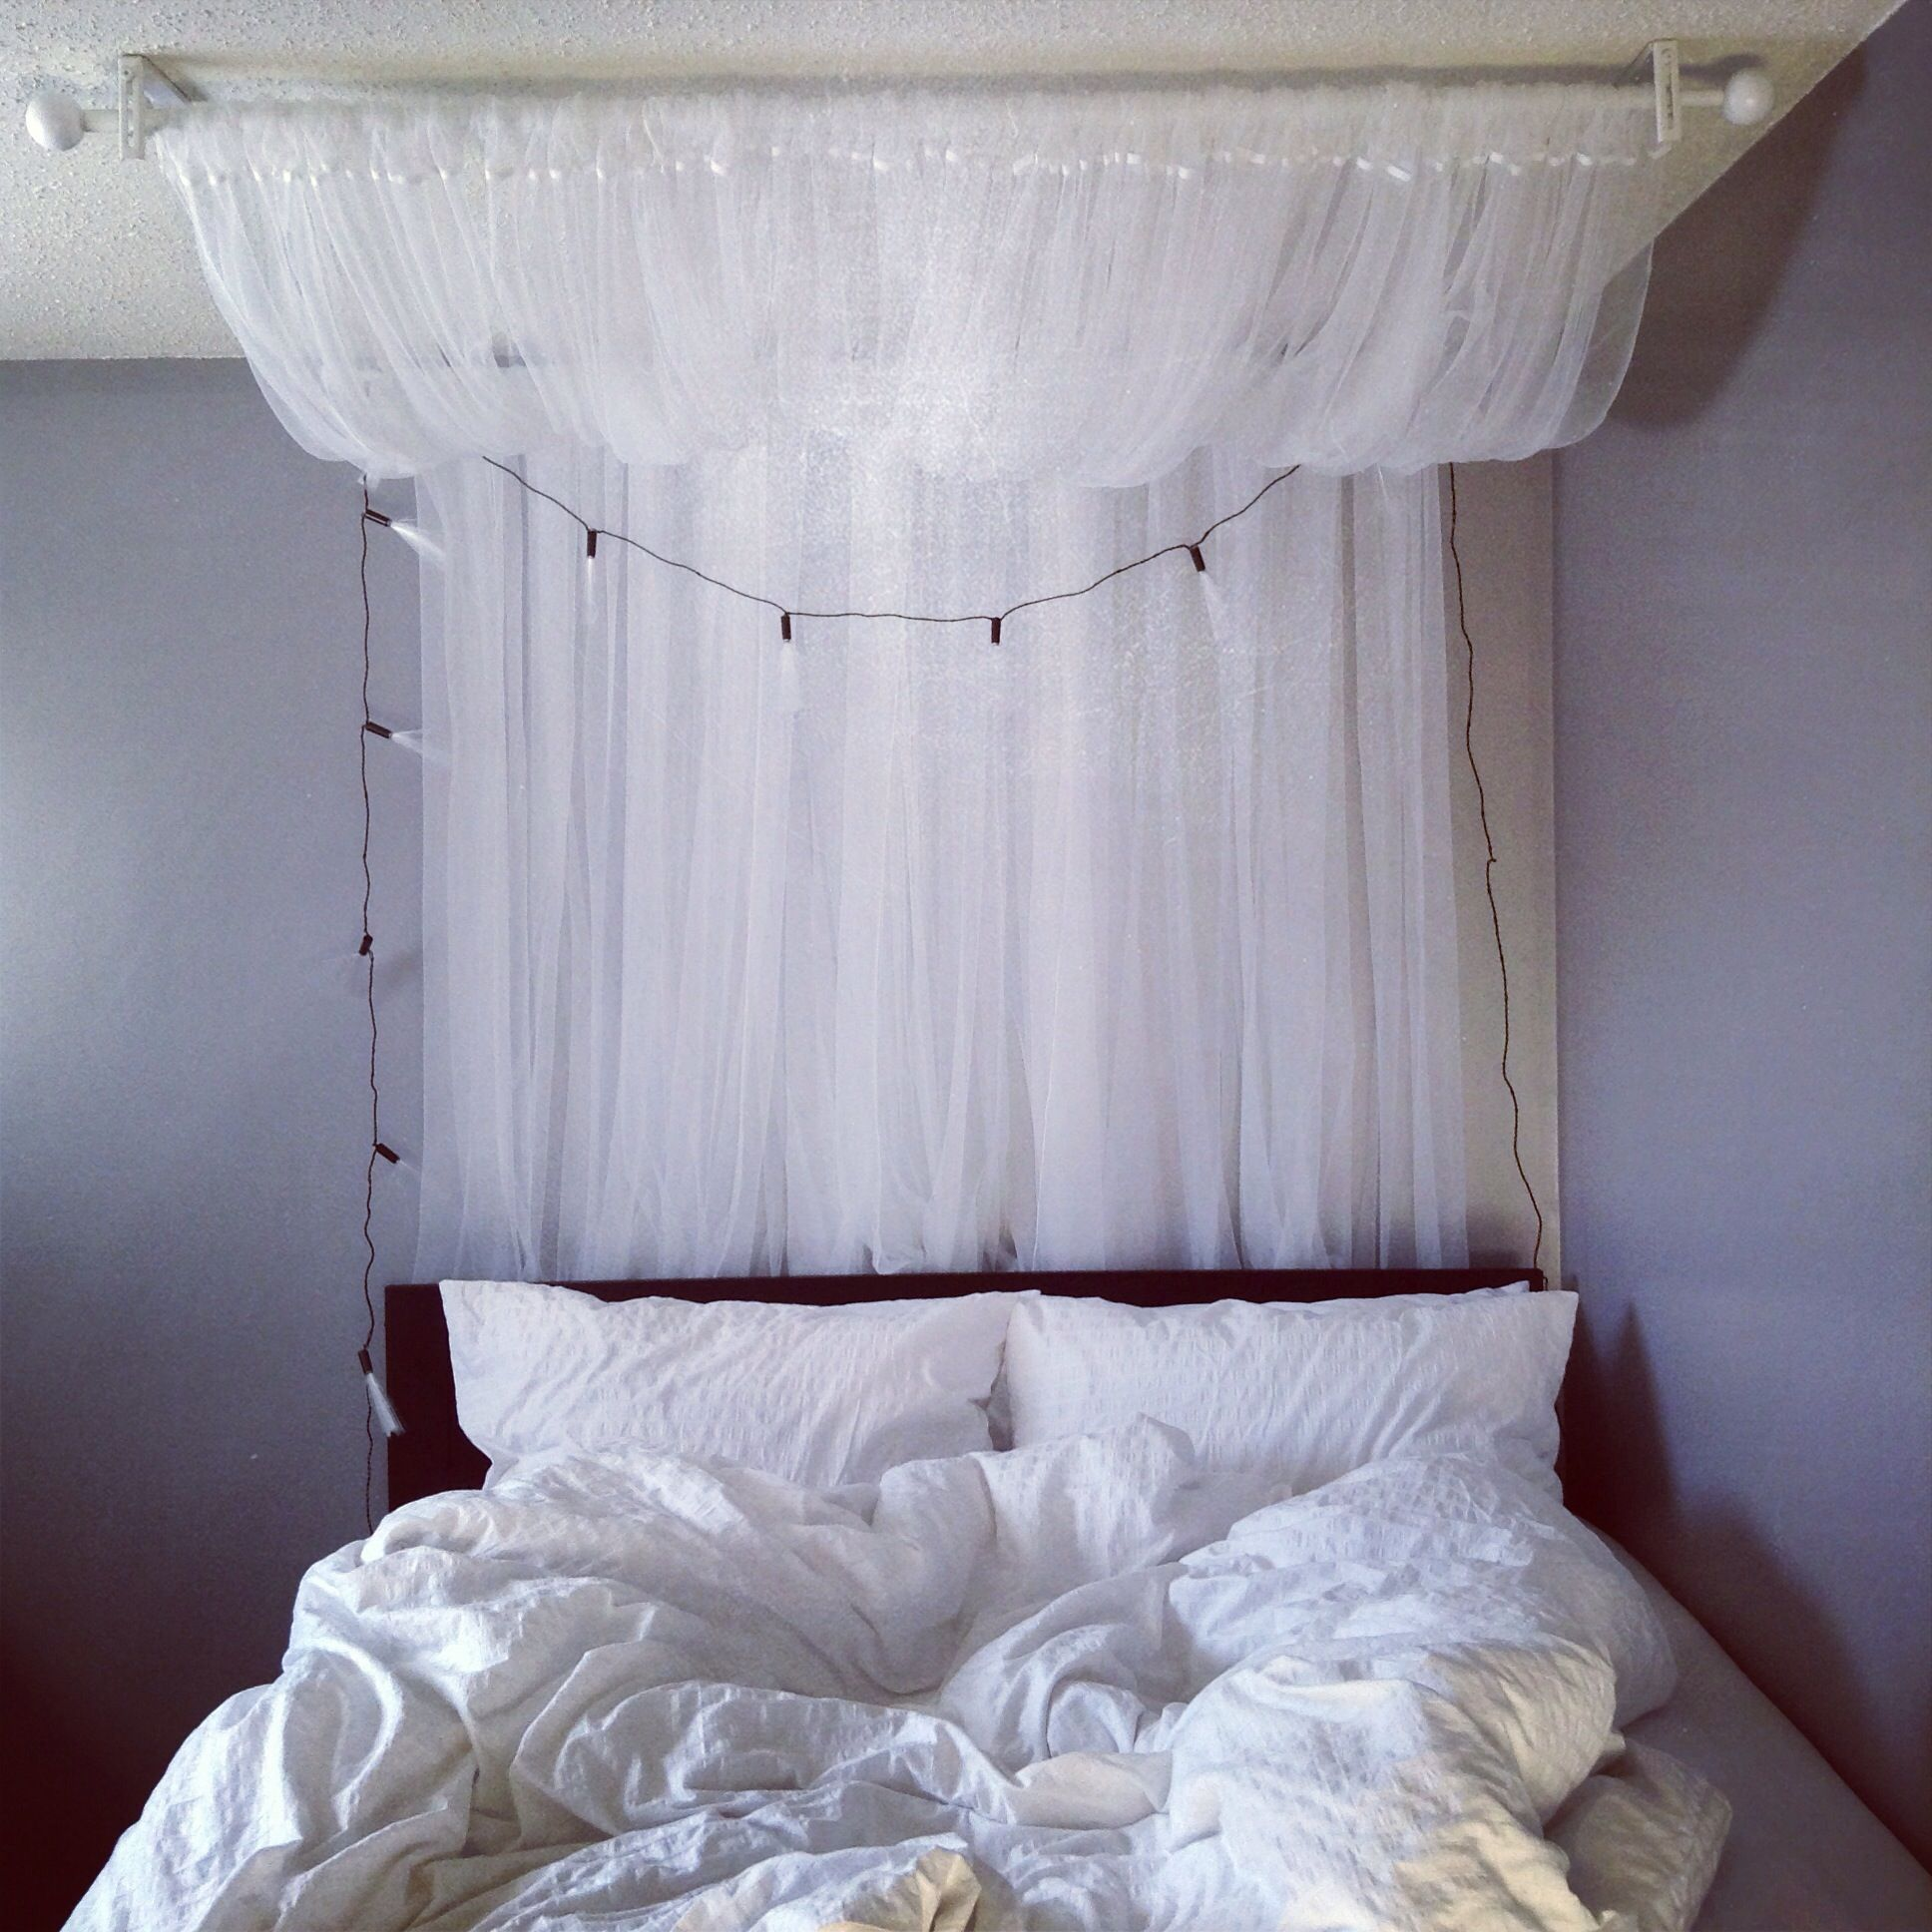 Ceiling mount curtains quotes - Diy Canopy 2 Curtain Rods And 2 Sets Of Lill Sheer Curtains All